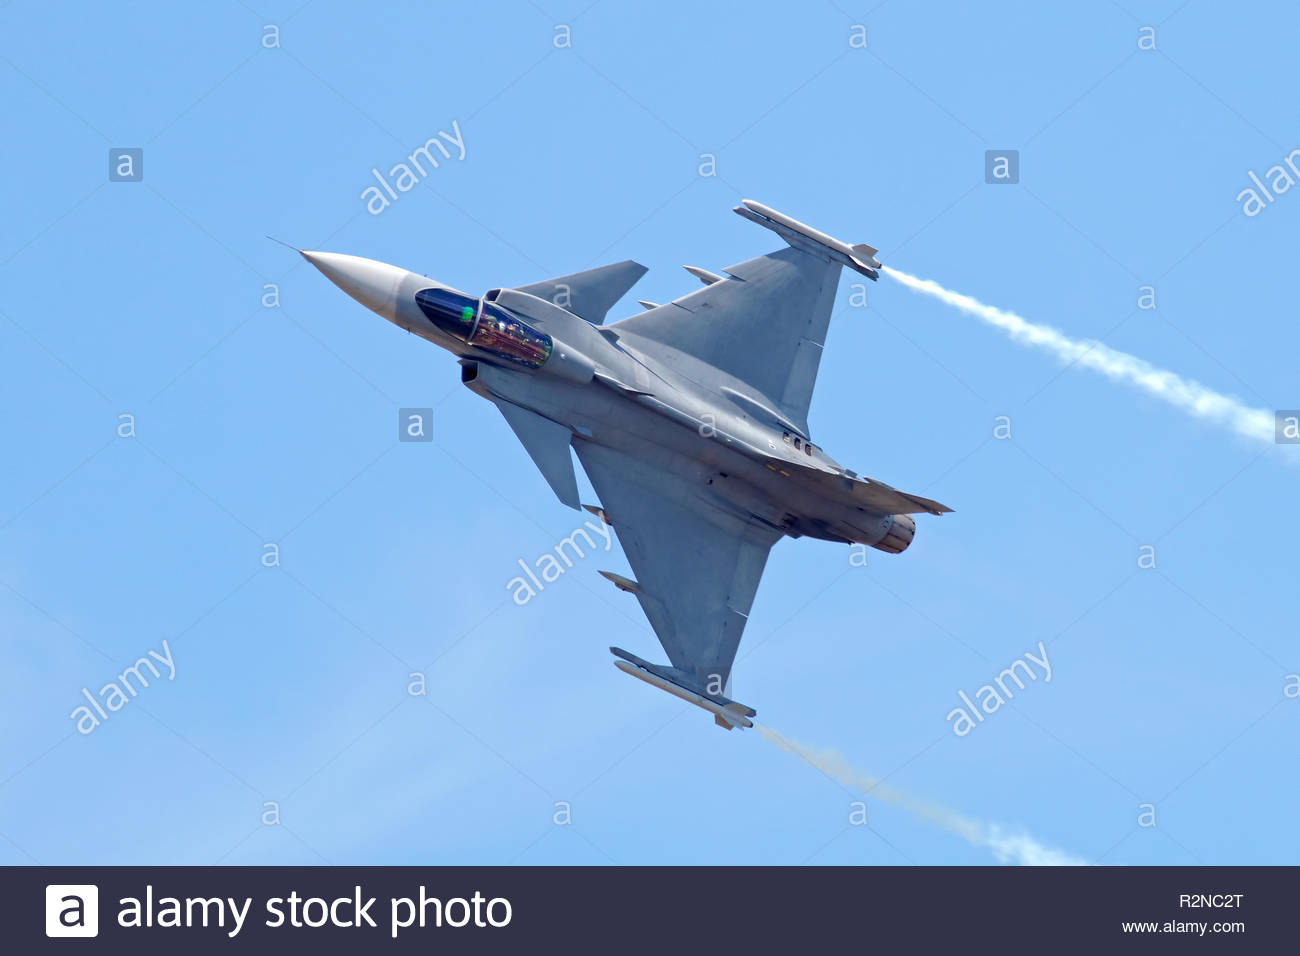 Military Fighter Jet on blue sky - Stock Image